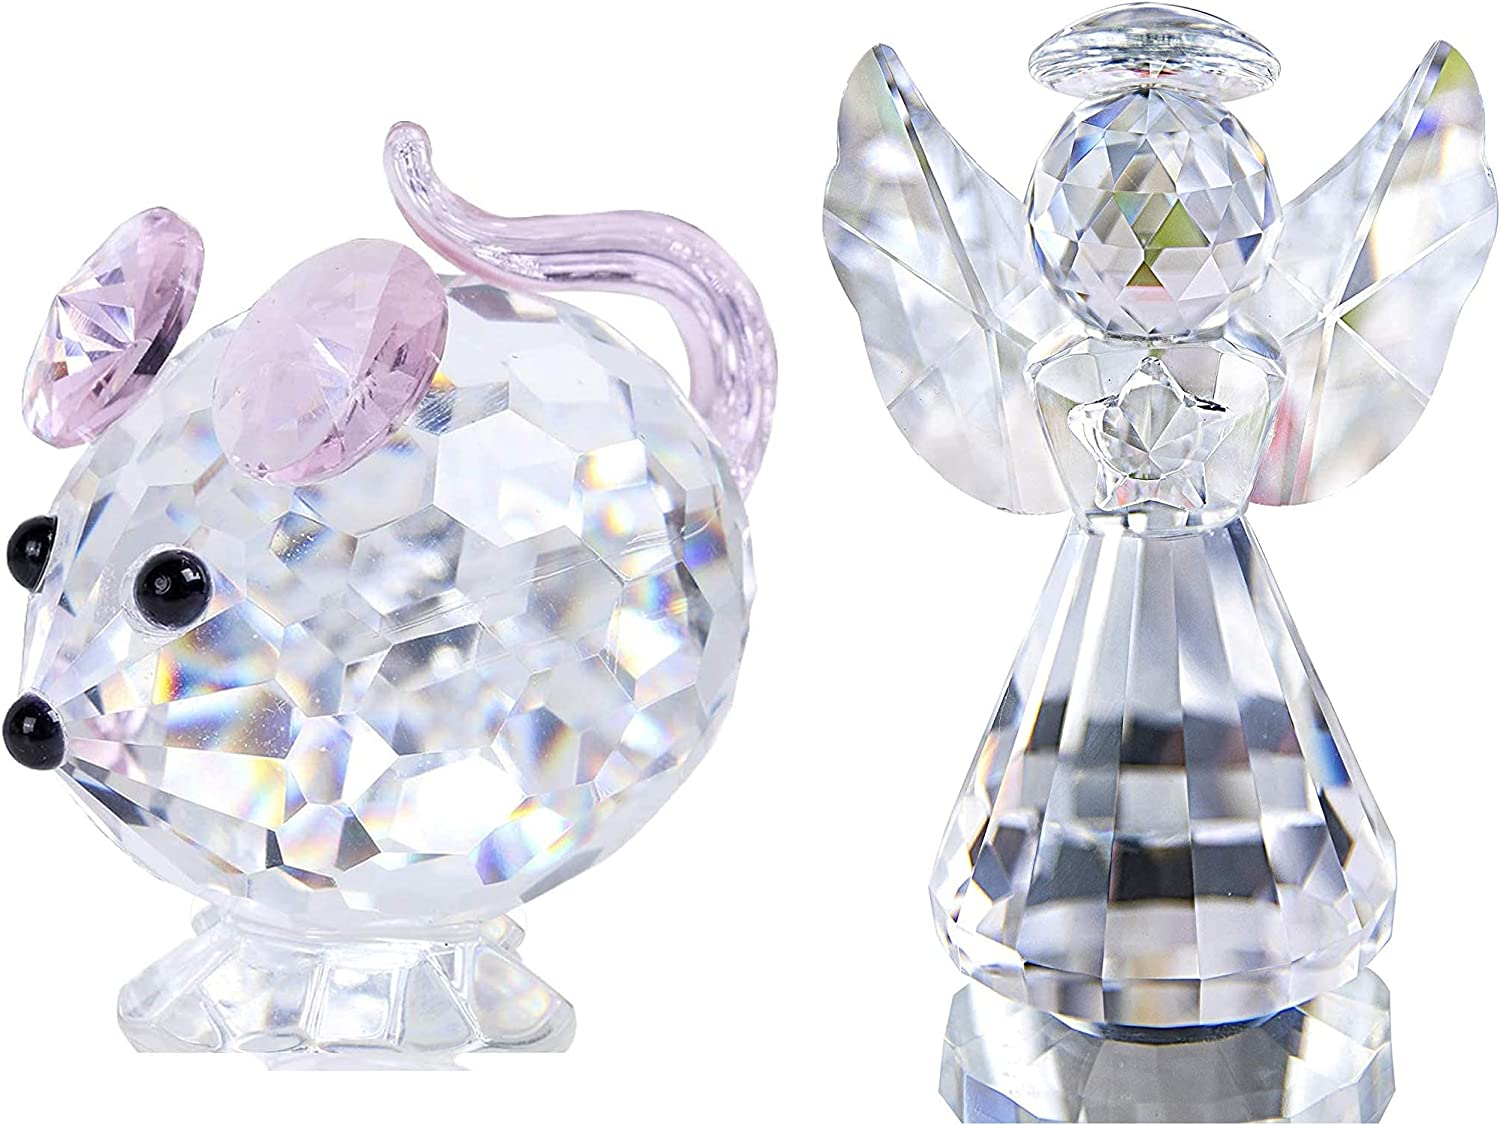 Crystal Figurines Collectibles-Glass Animals Special Finally popular brand sale item Decor Figurine Home